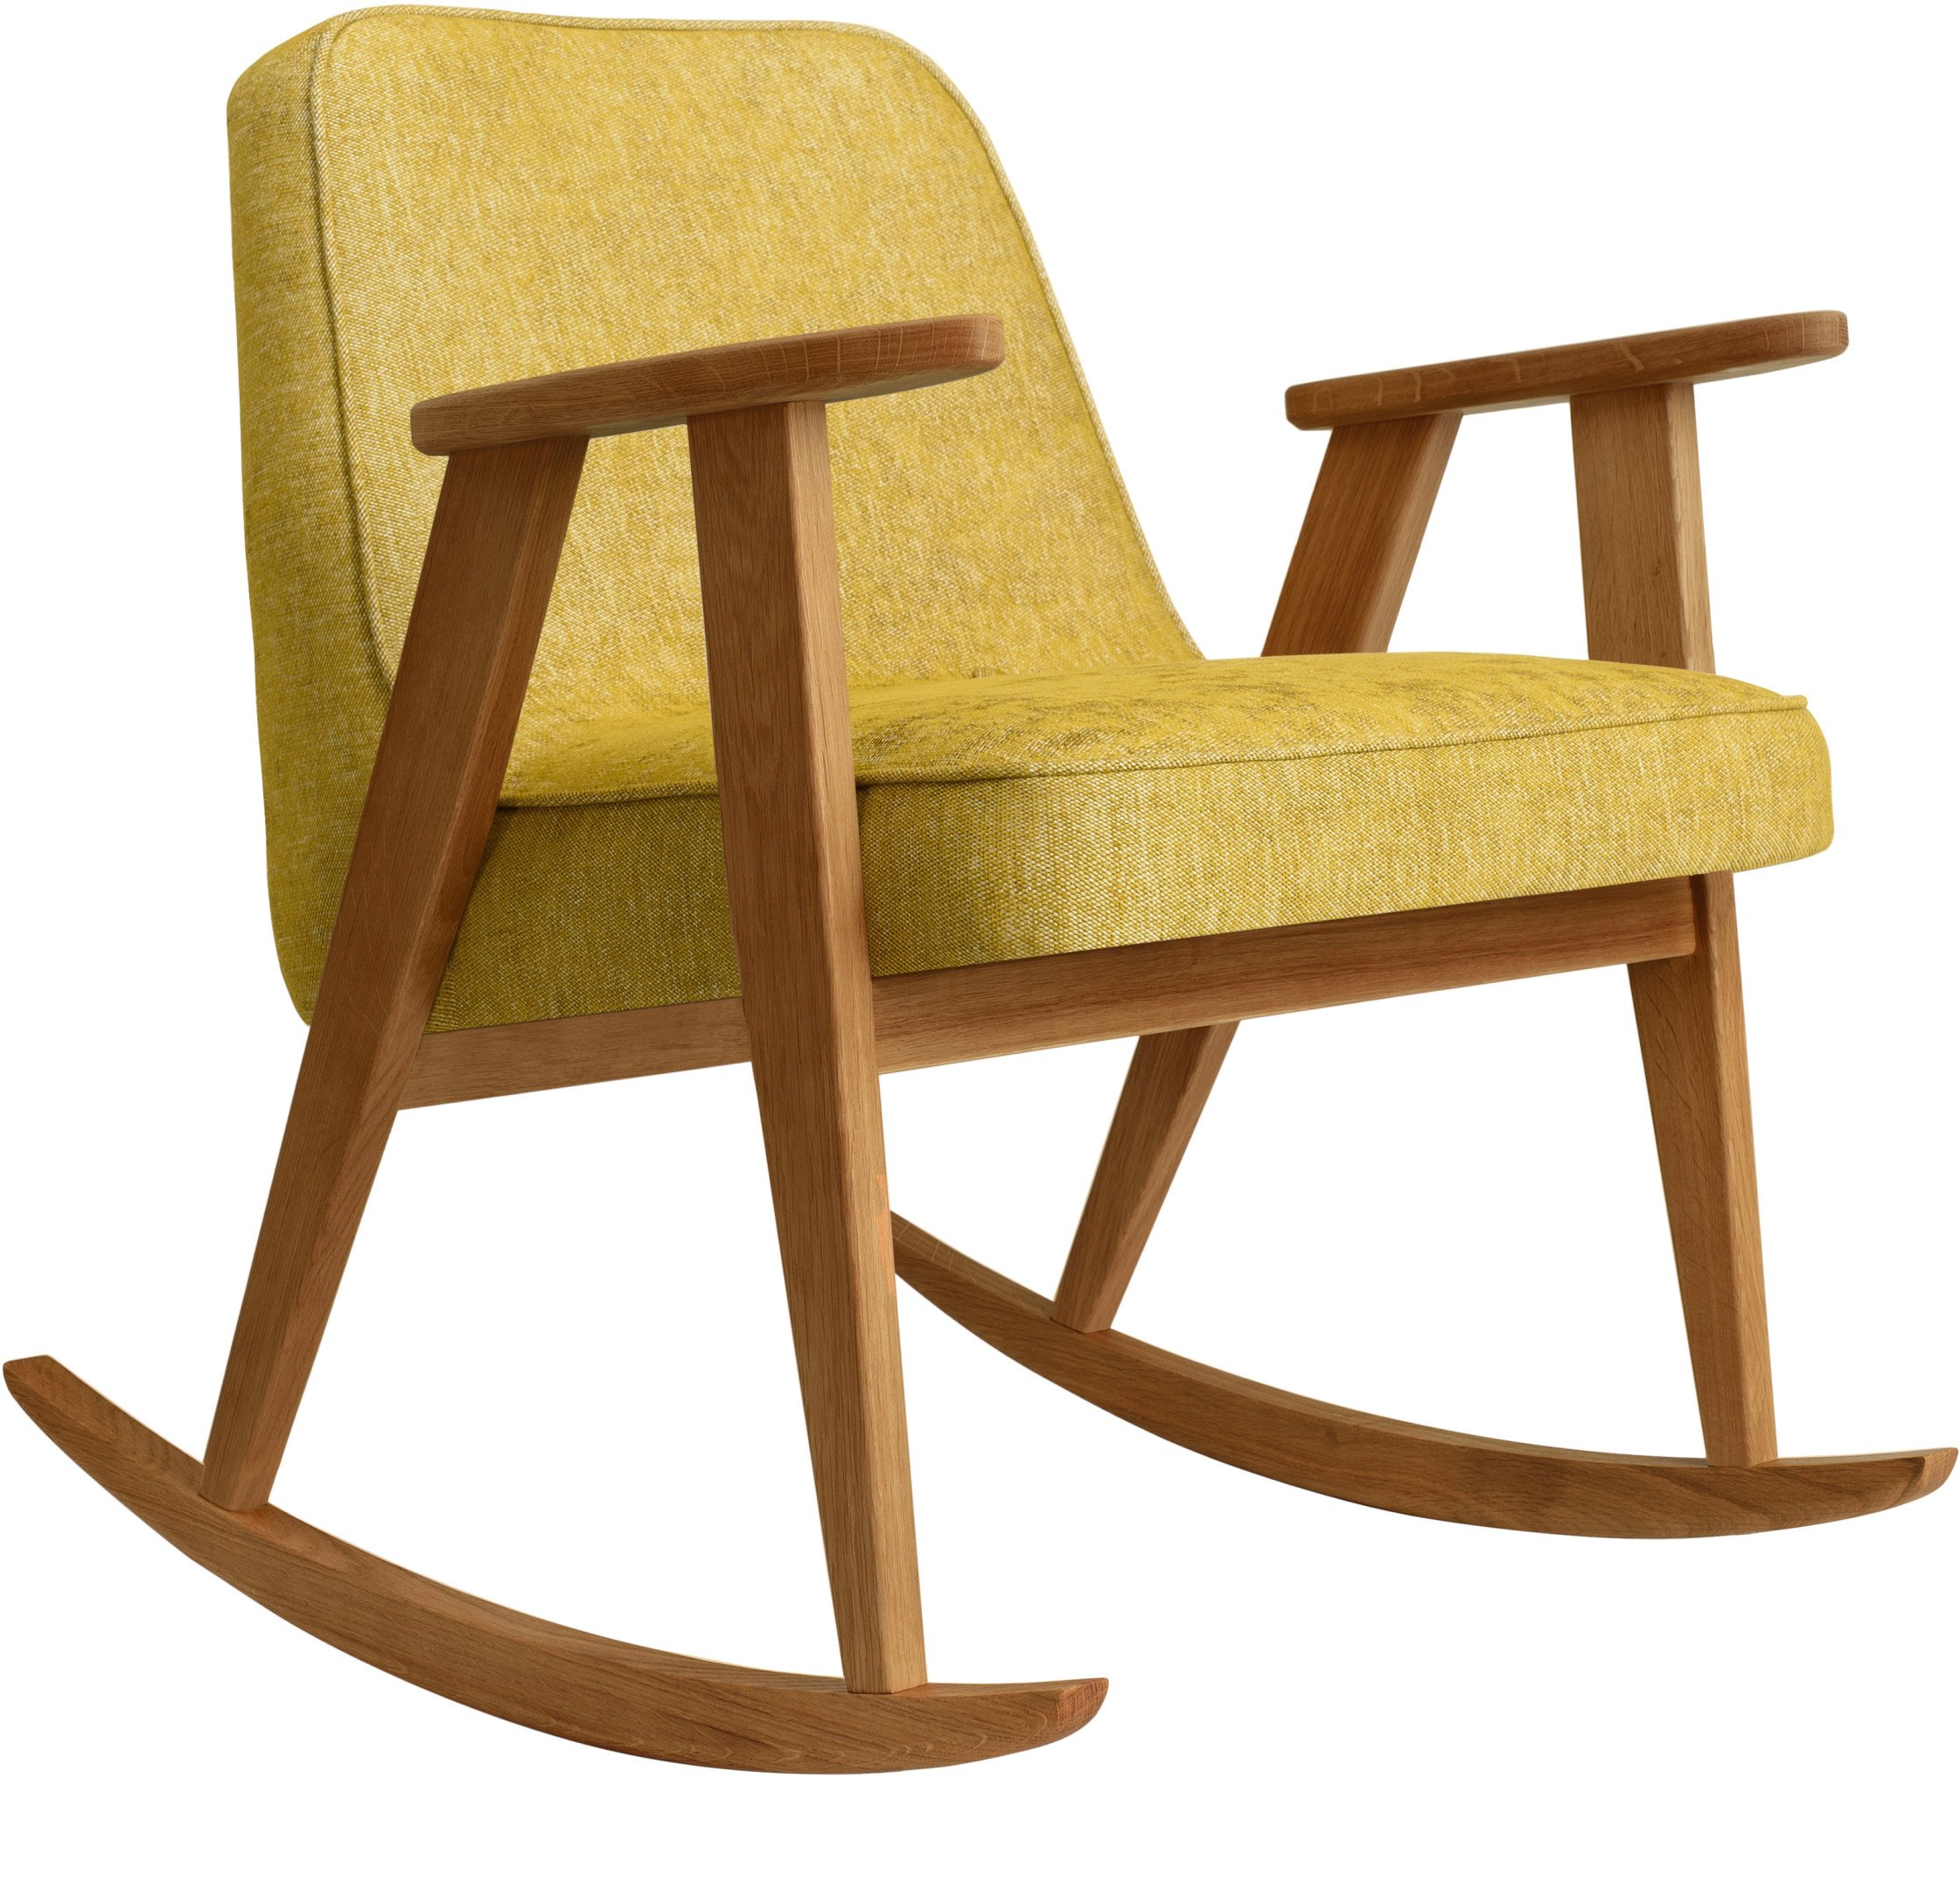 366 Rocking Chair Loft Mustard (dark oak) by Józef Chierowski